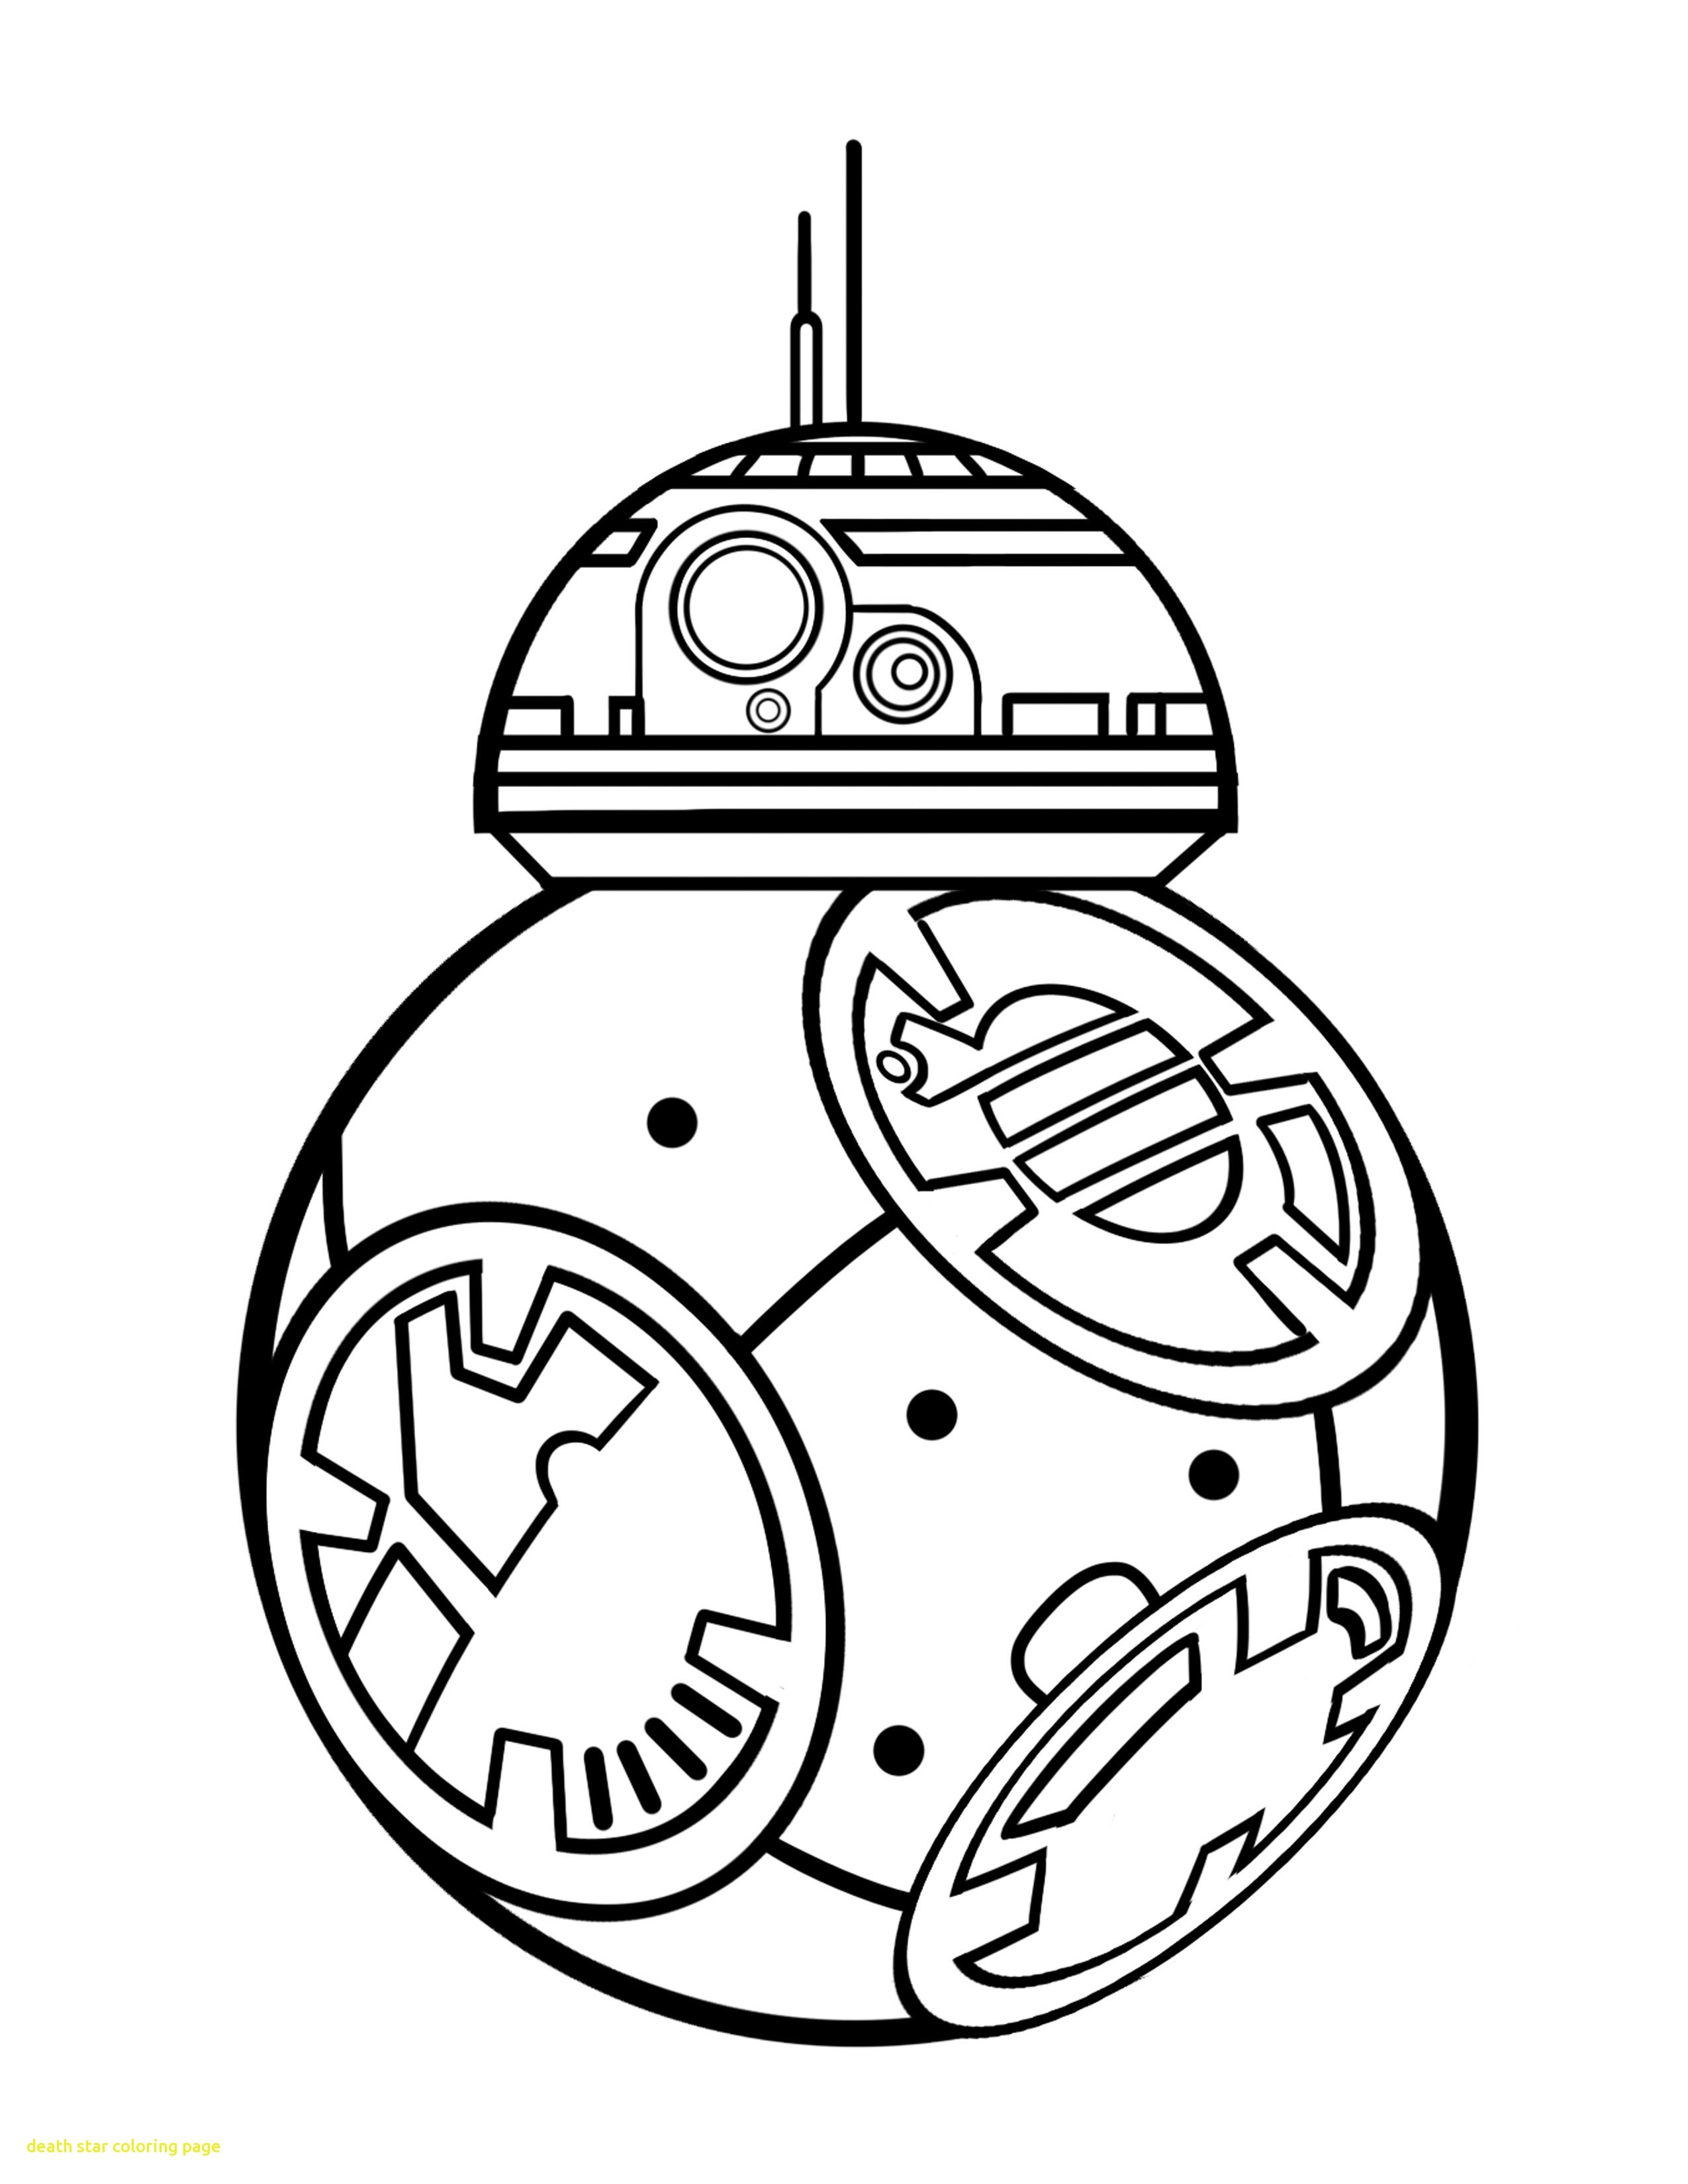 death star coloring page star wars death star coloring page mama likes this page star death coloring